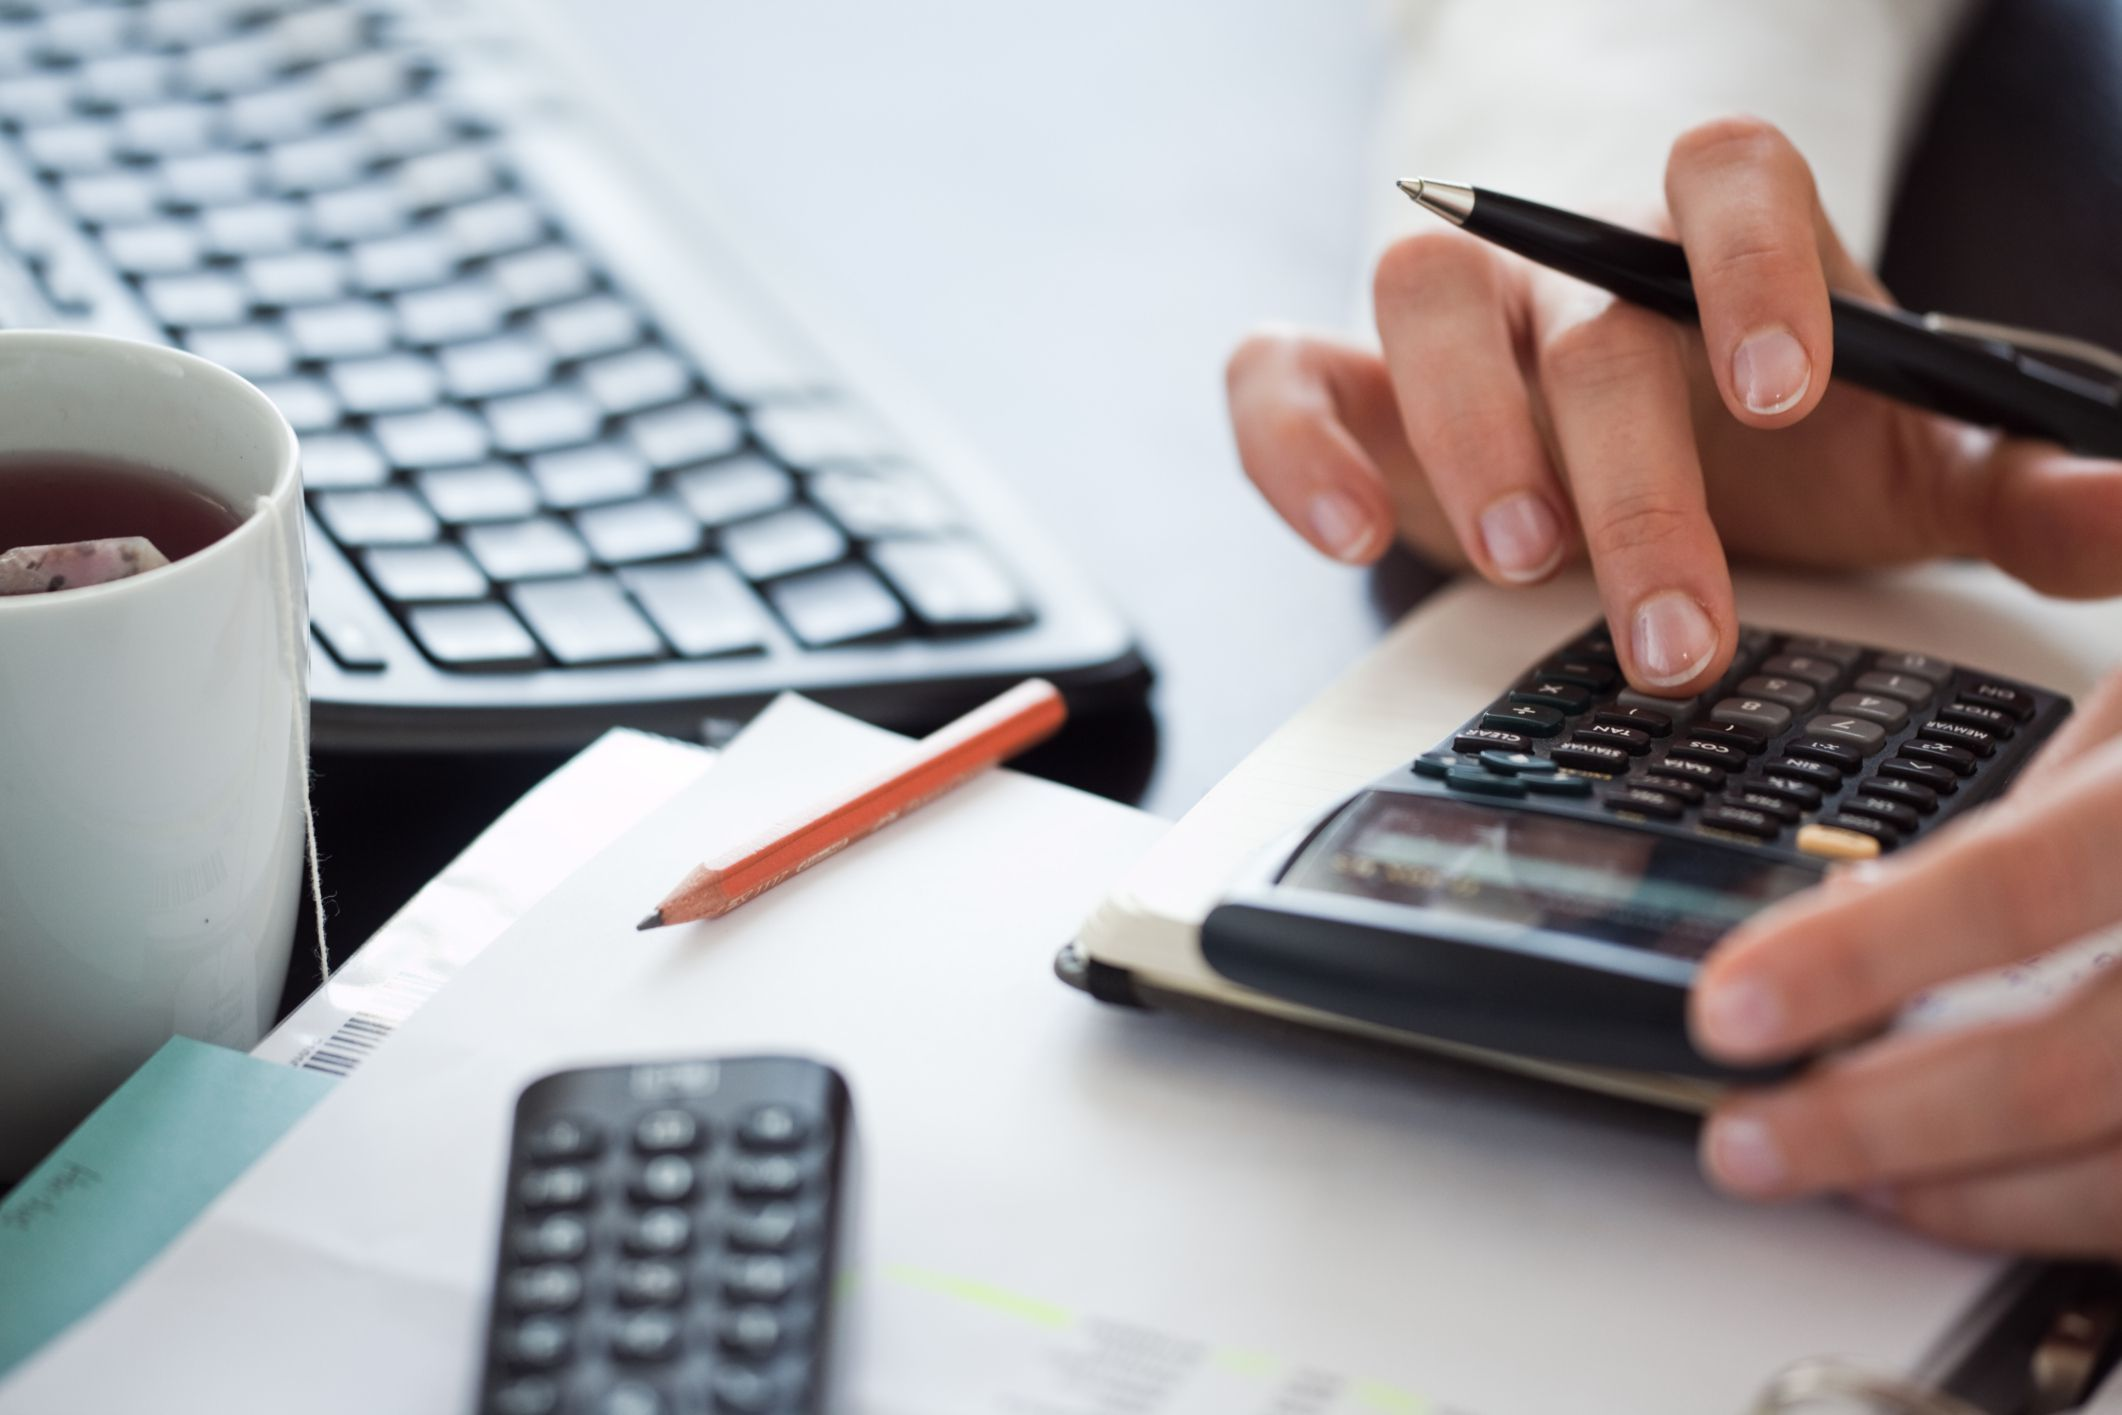 Helping Hand With Bad Credit Debt Consolidation Loans